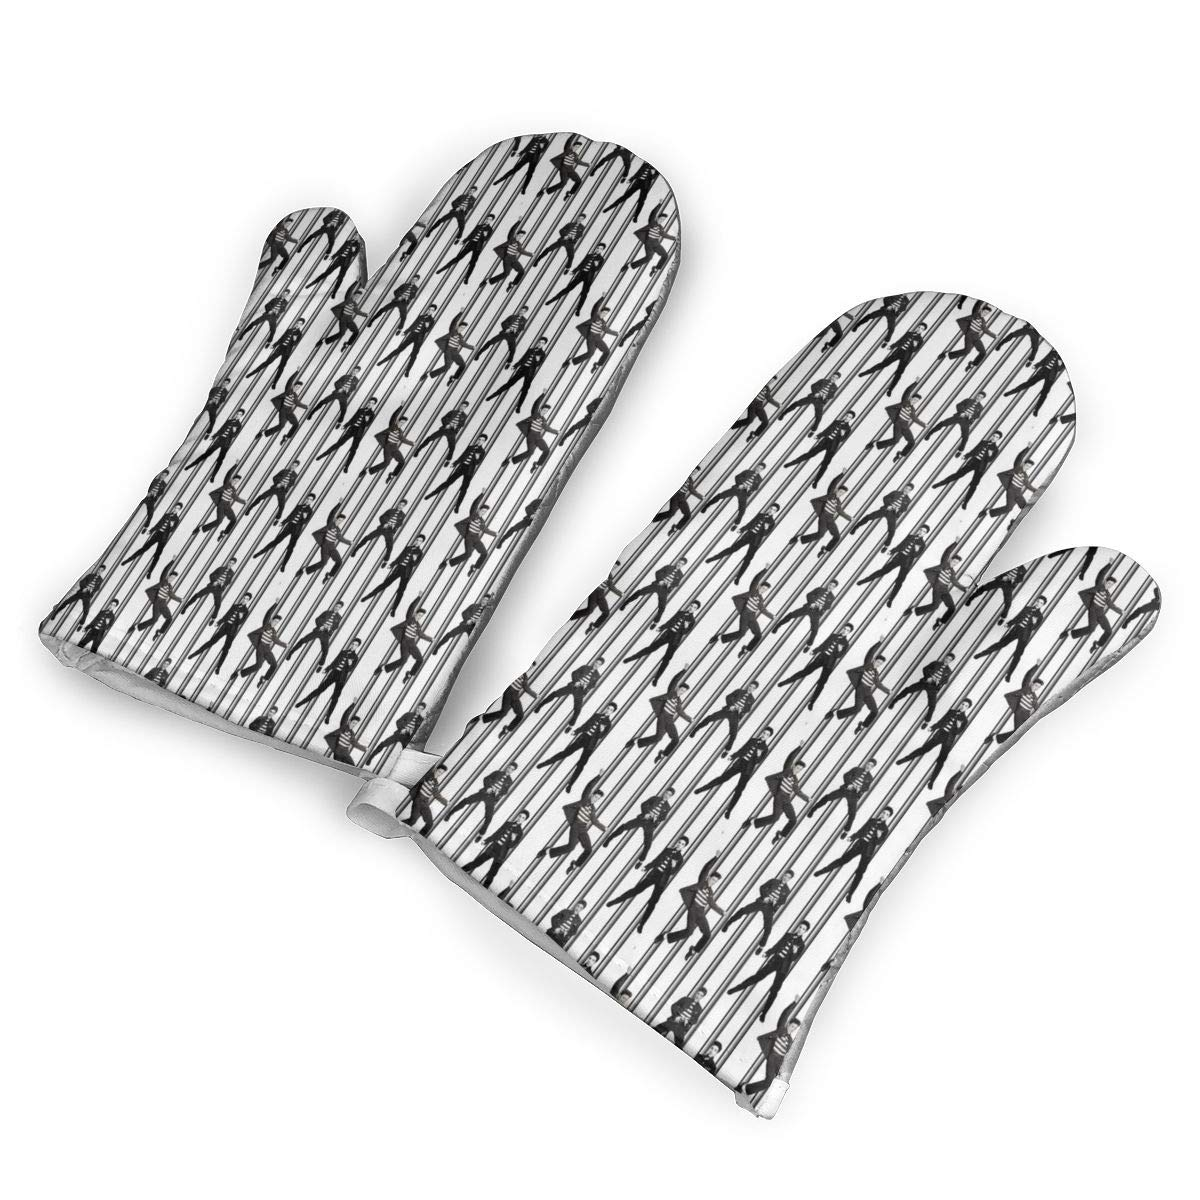 Victoria-Ai Elvis Prison Rock Oven Mitts Premium Heat Resistant Kitchen Gloves Non-Slip Easy to Use Baking Mittens for BBQ/Cooking/Grilling